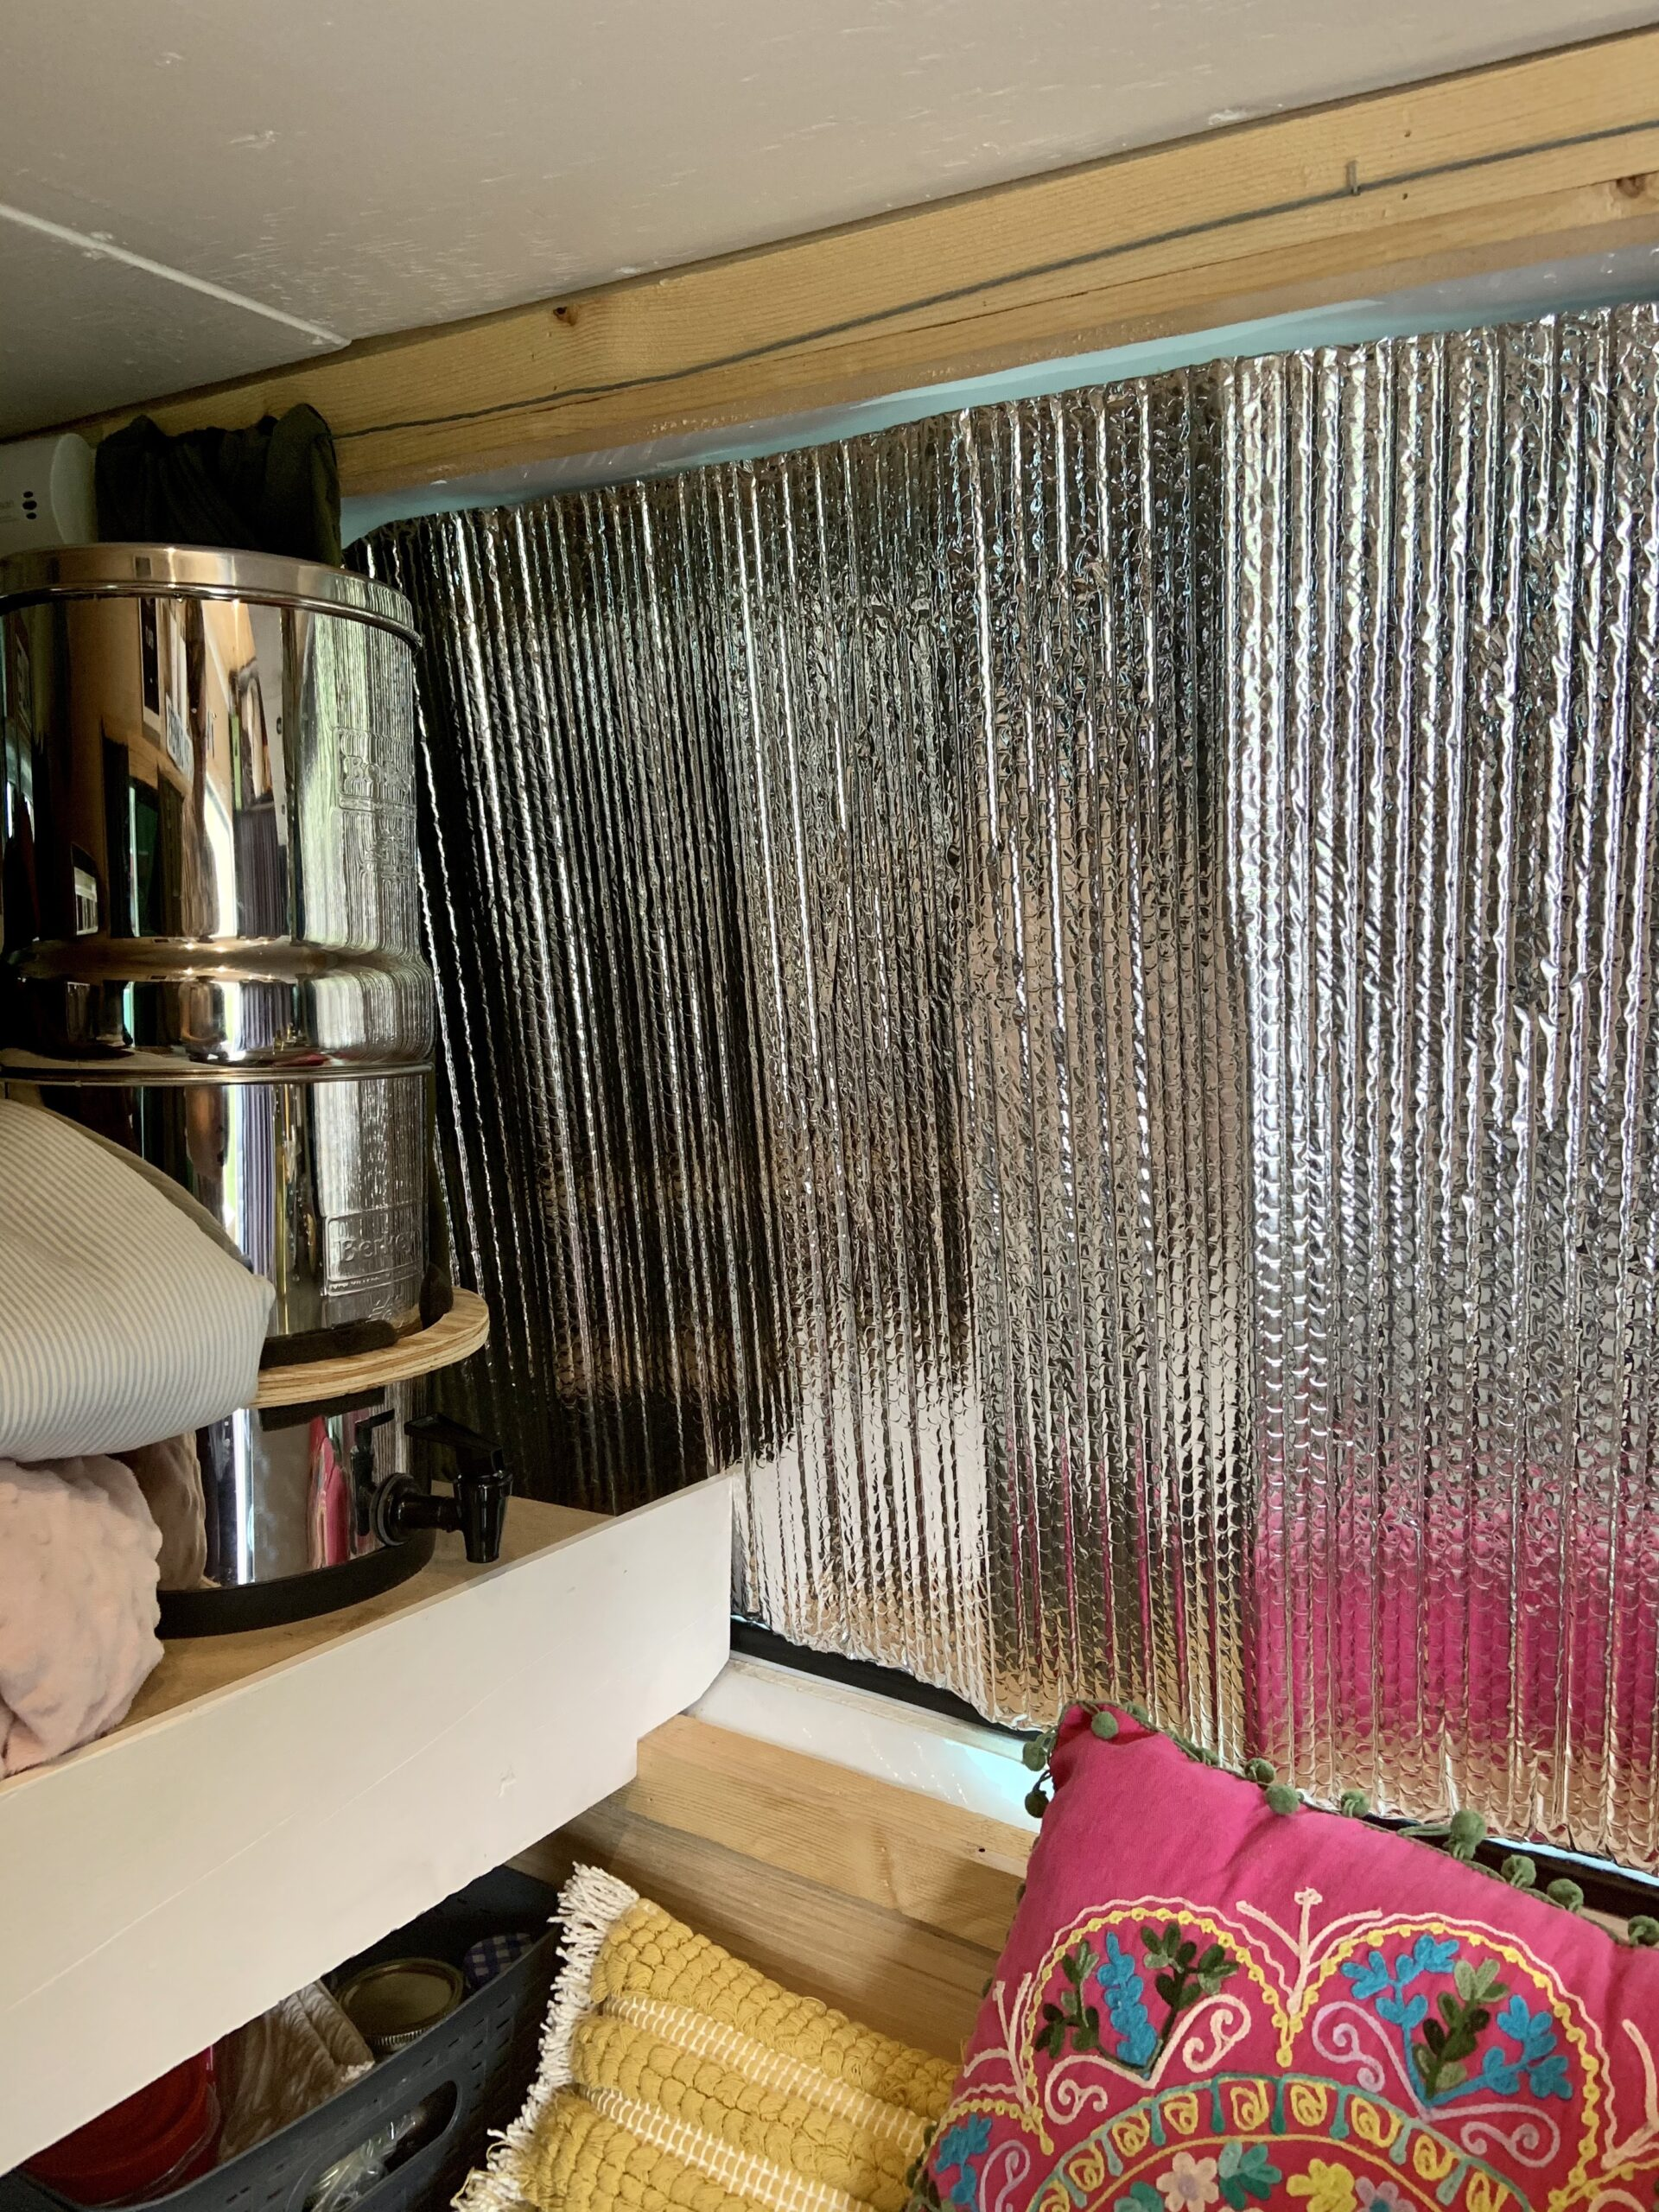 How to deal with condensation in a van